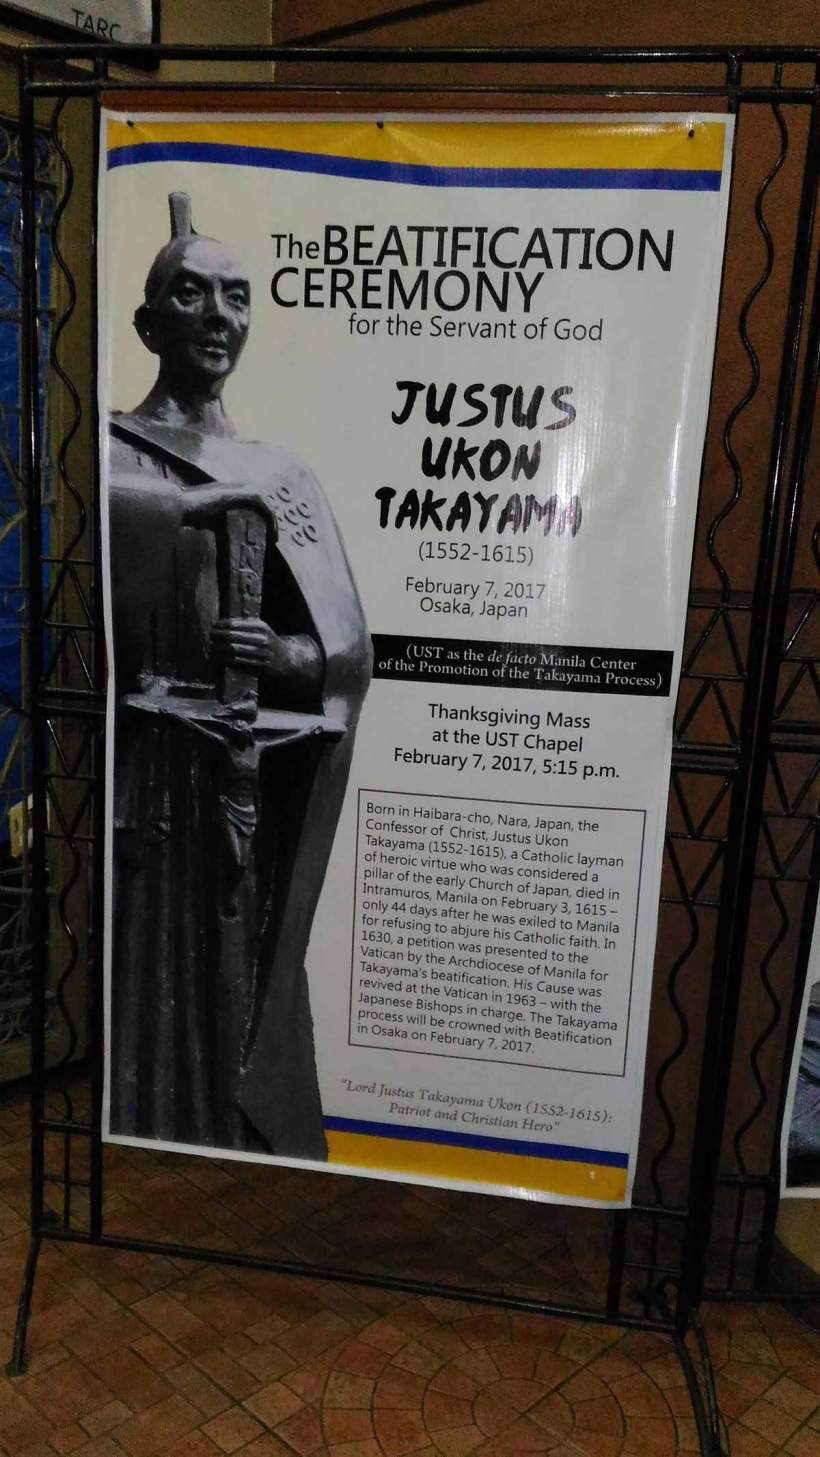 The Beatification Ceremony for the Servant of God Justus Ukon Takayama